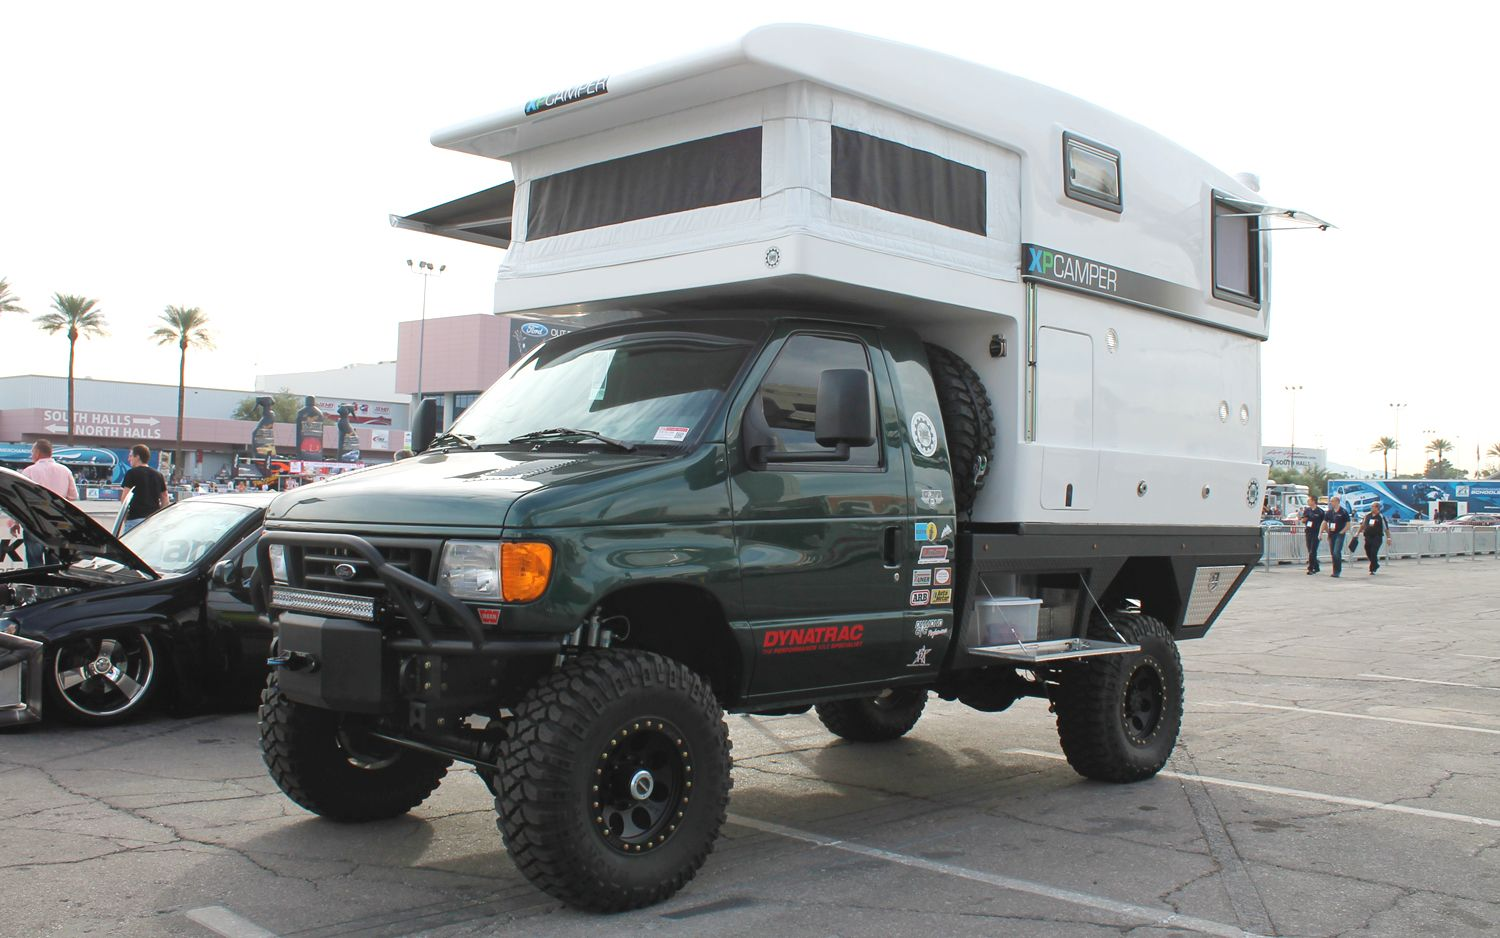 Cool Lifted Motorhome Lifted Shuttle Bus Conversion Ideas For The Nomad